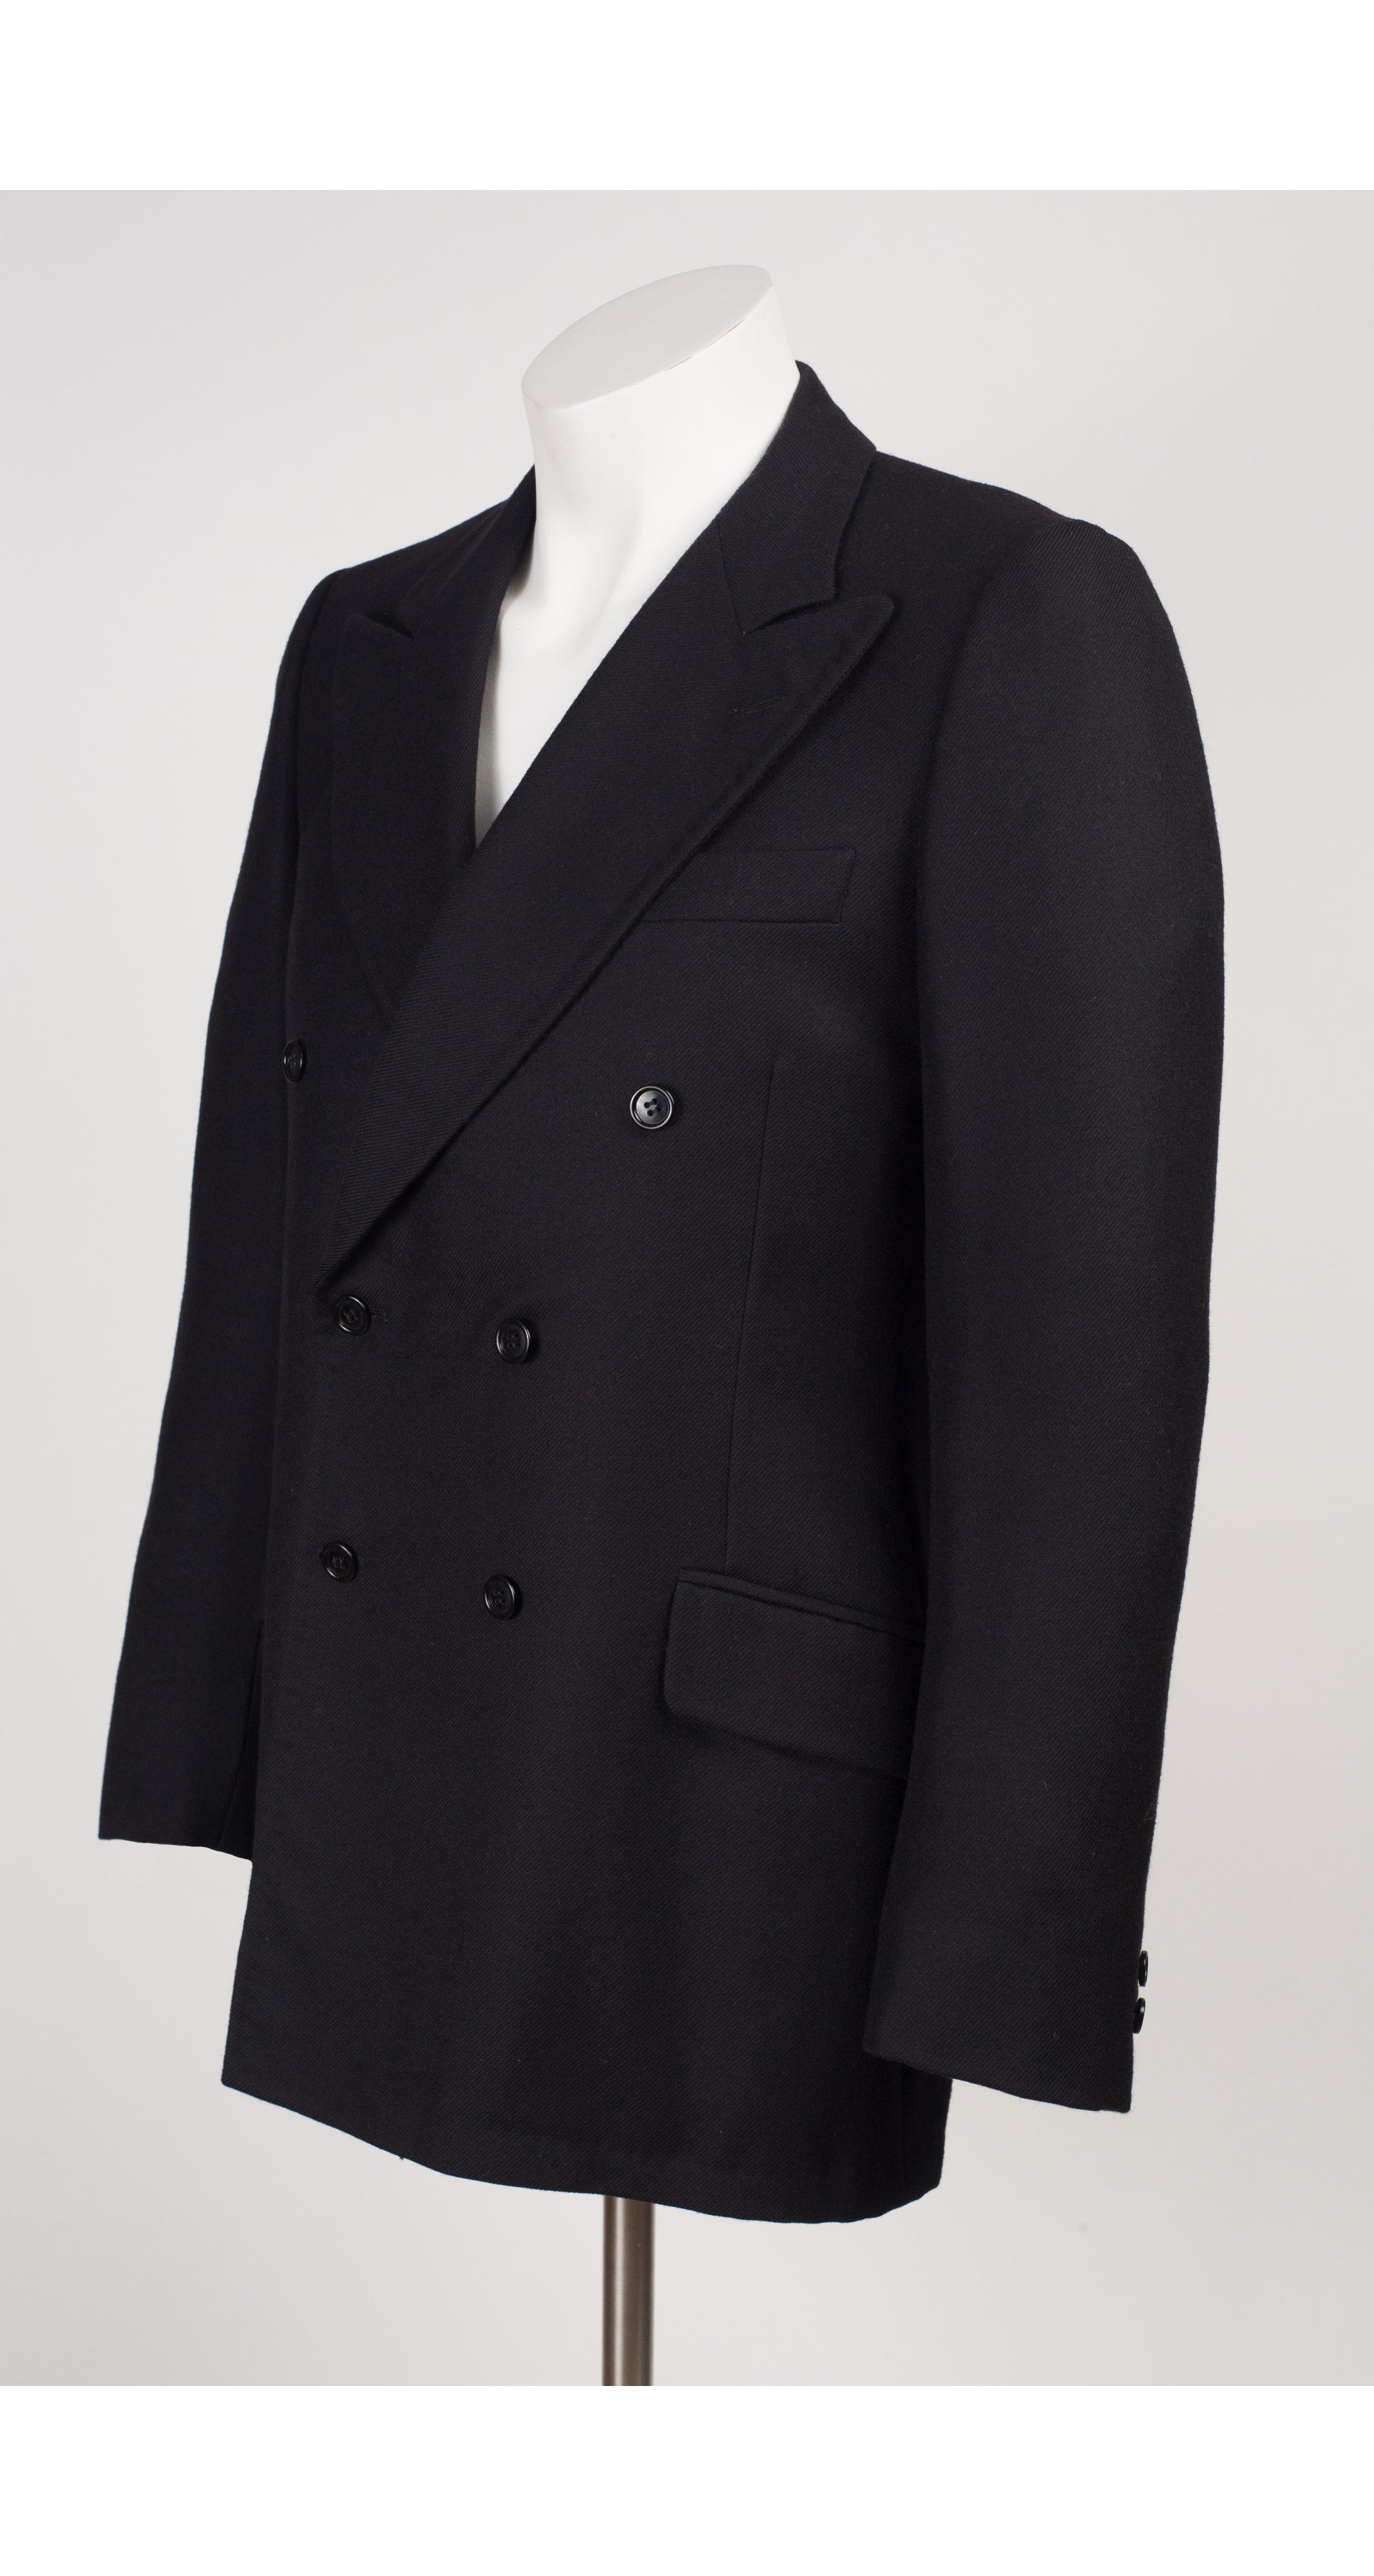 1970s Men's Black Wool Double-Breasted Suit Jacket